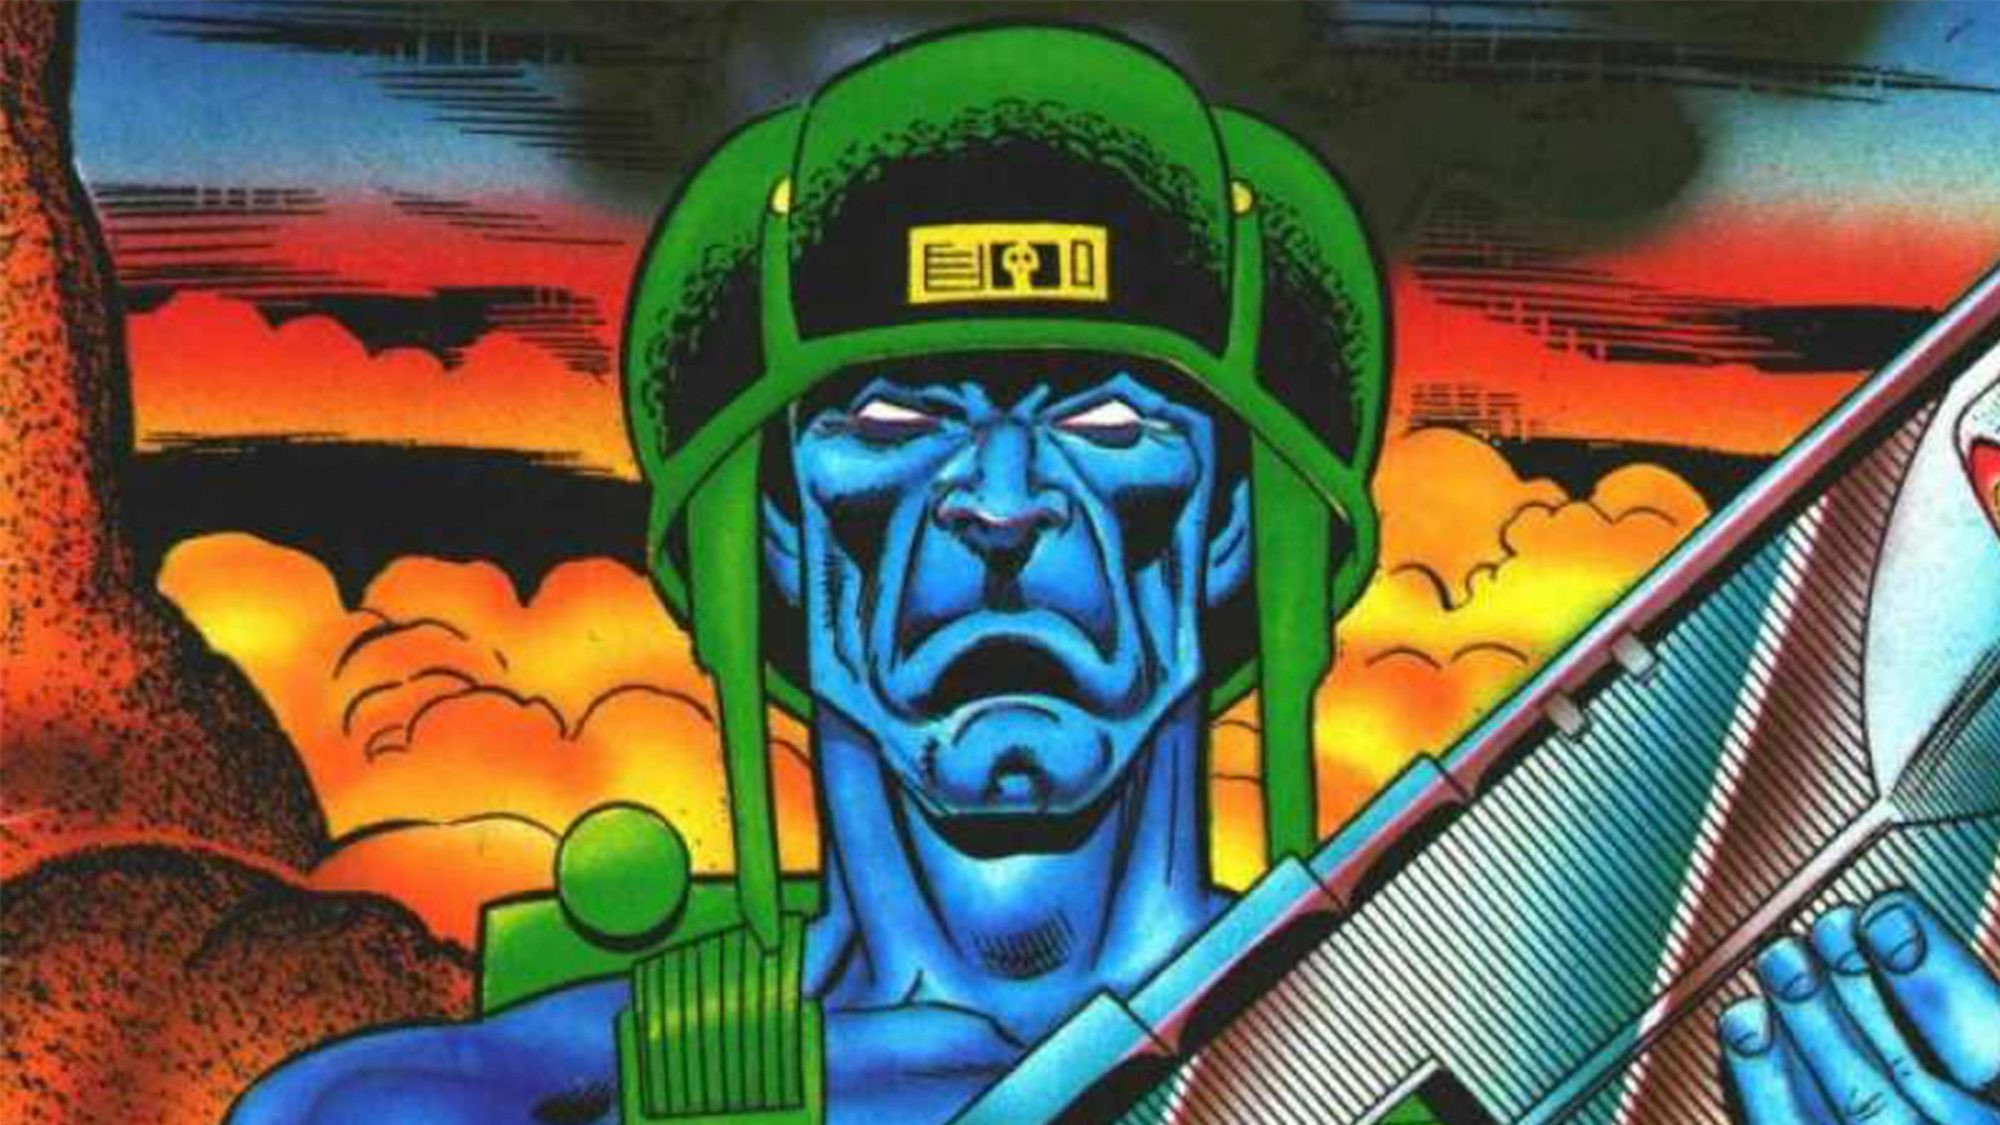 Rogue Trooper Issue Number 34 July 1, 1989 Publisher: Quality Communications